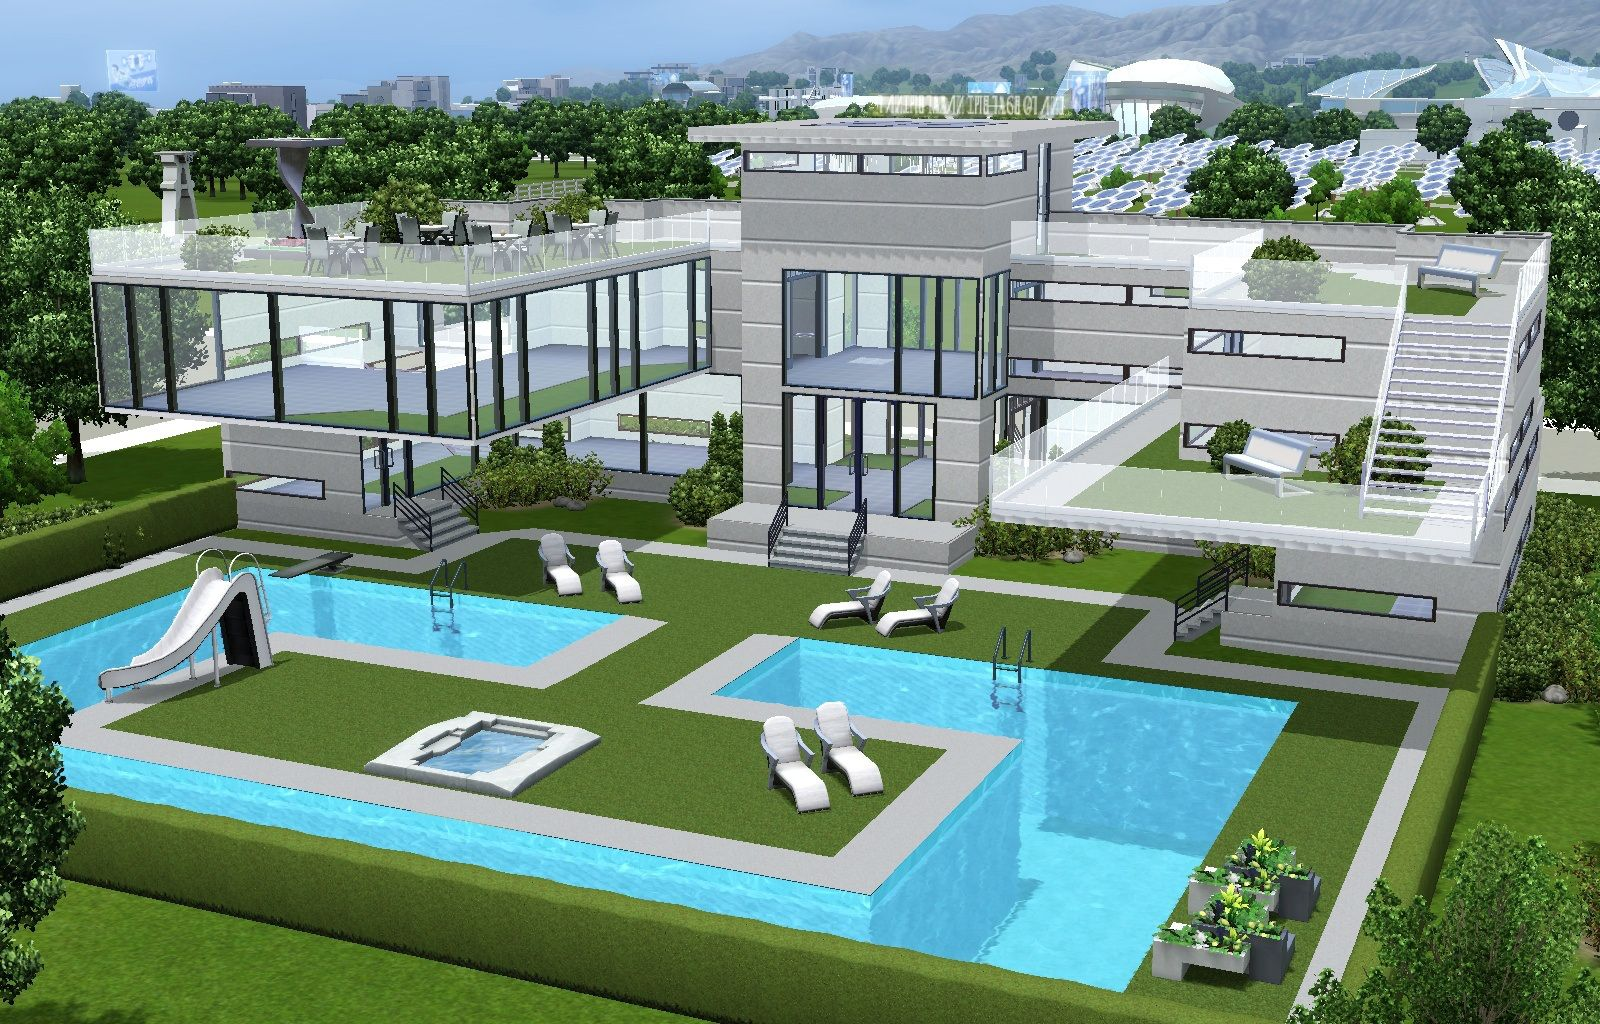 Must Have Gorgeous Sims 3 Houses And Villas Maison